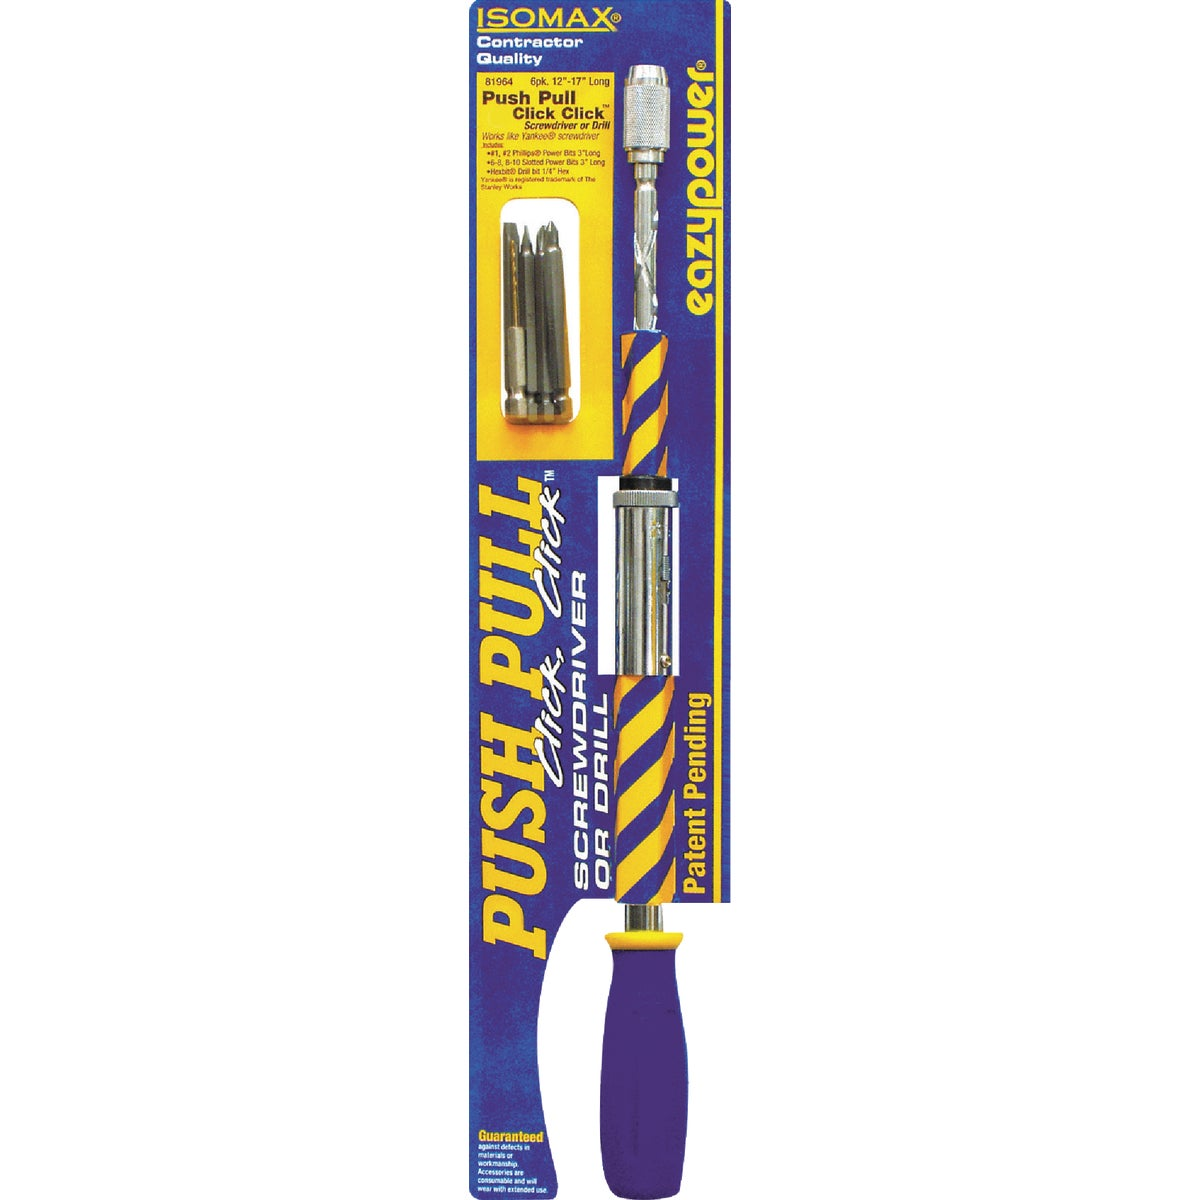 Eazypower Corp SCREWDRIVER/DRILL 81964